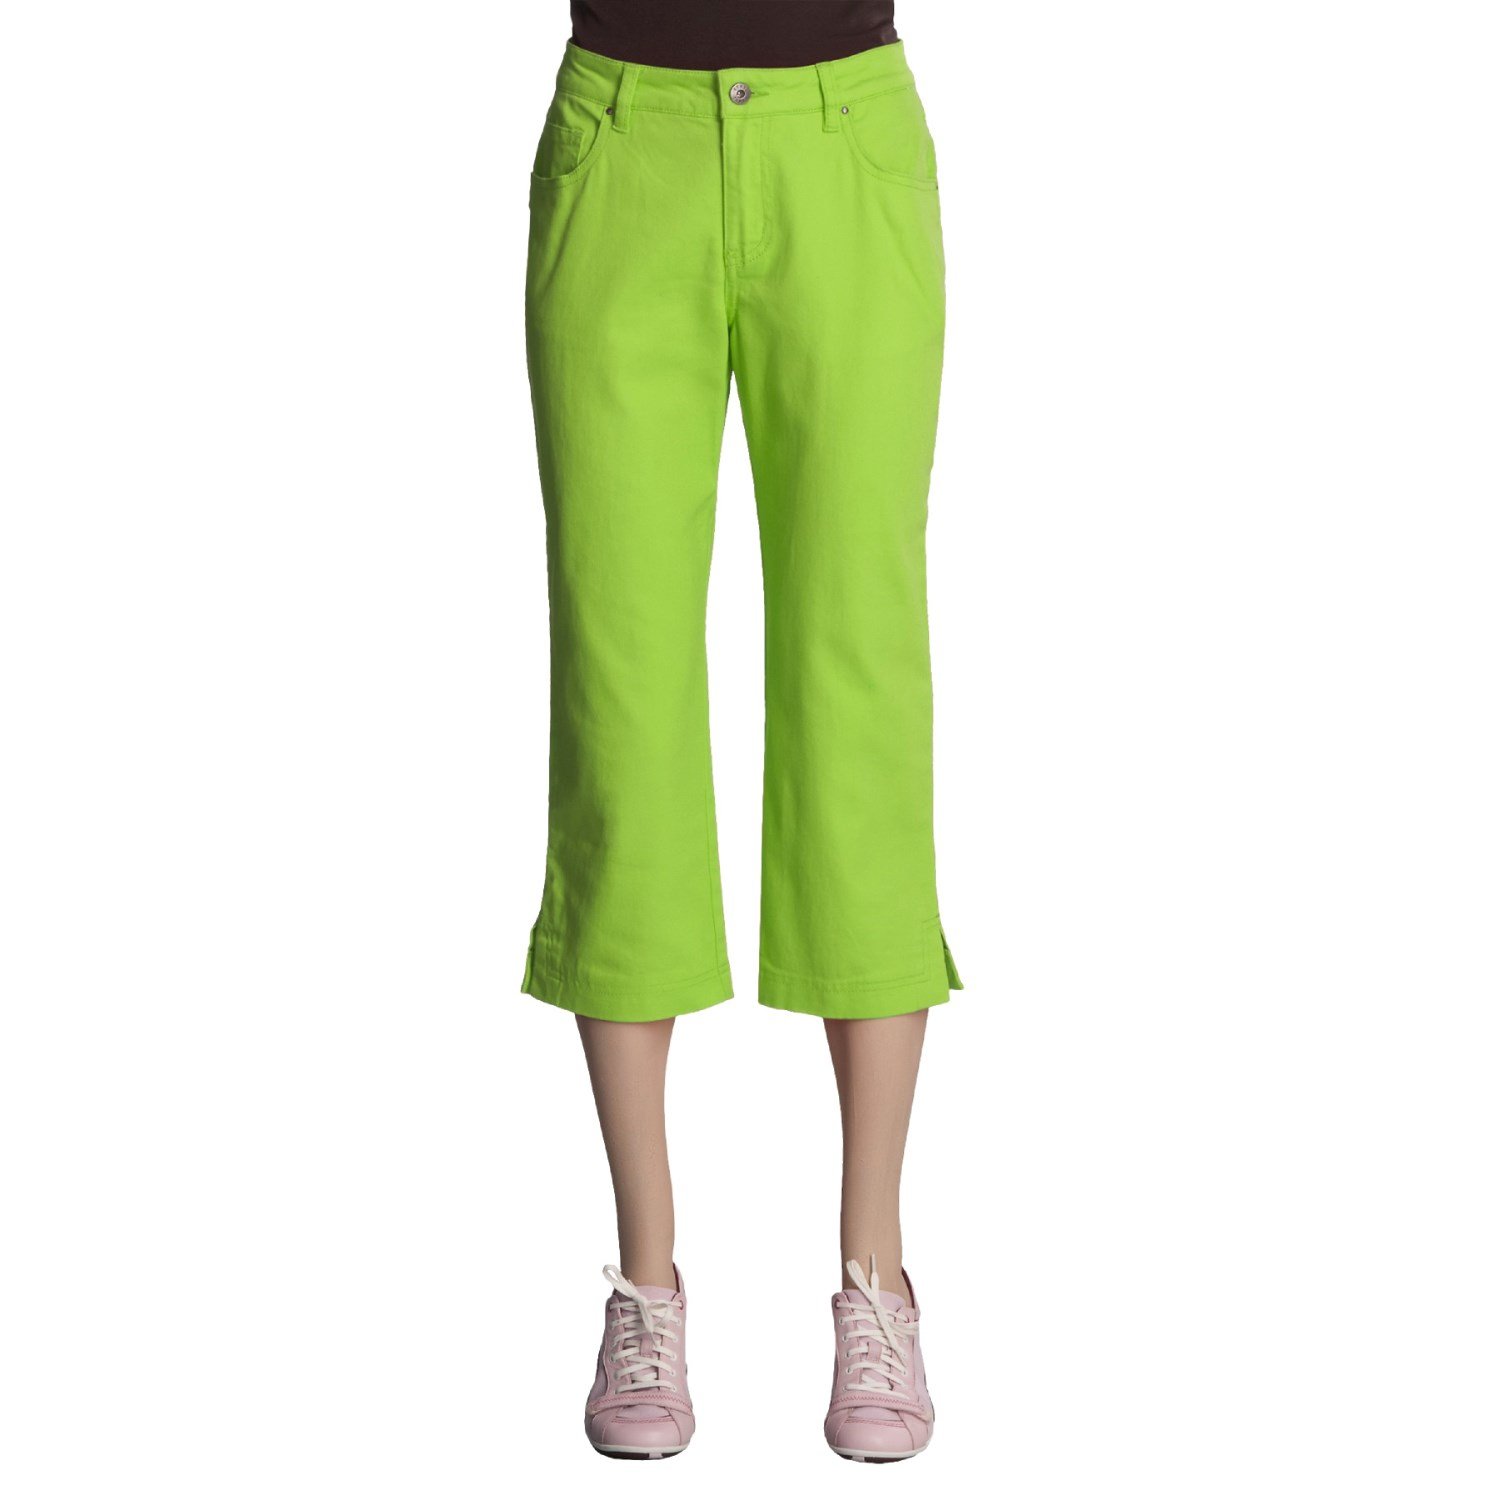 Cool Just Cut Off The Legs To Create Jean Capris Or Shorts  Big BrothersBig Sisters Take Clothing That They Can Convert Into Dollars Towards Their Mission Business Wear In Good Condition Is Always Appreciated At The Kelowna Womens Shelter